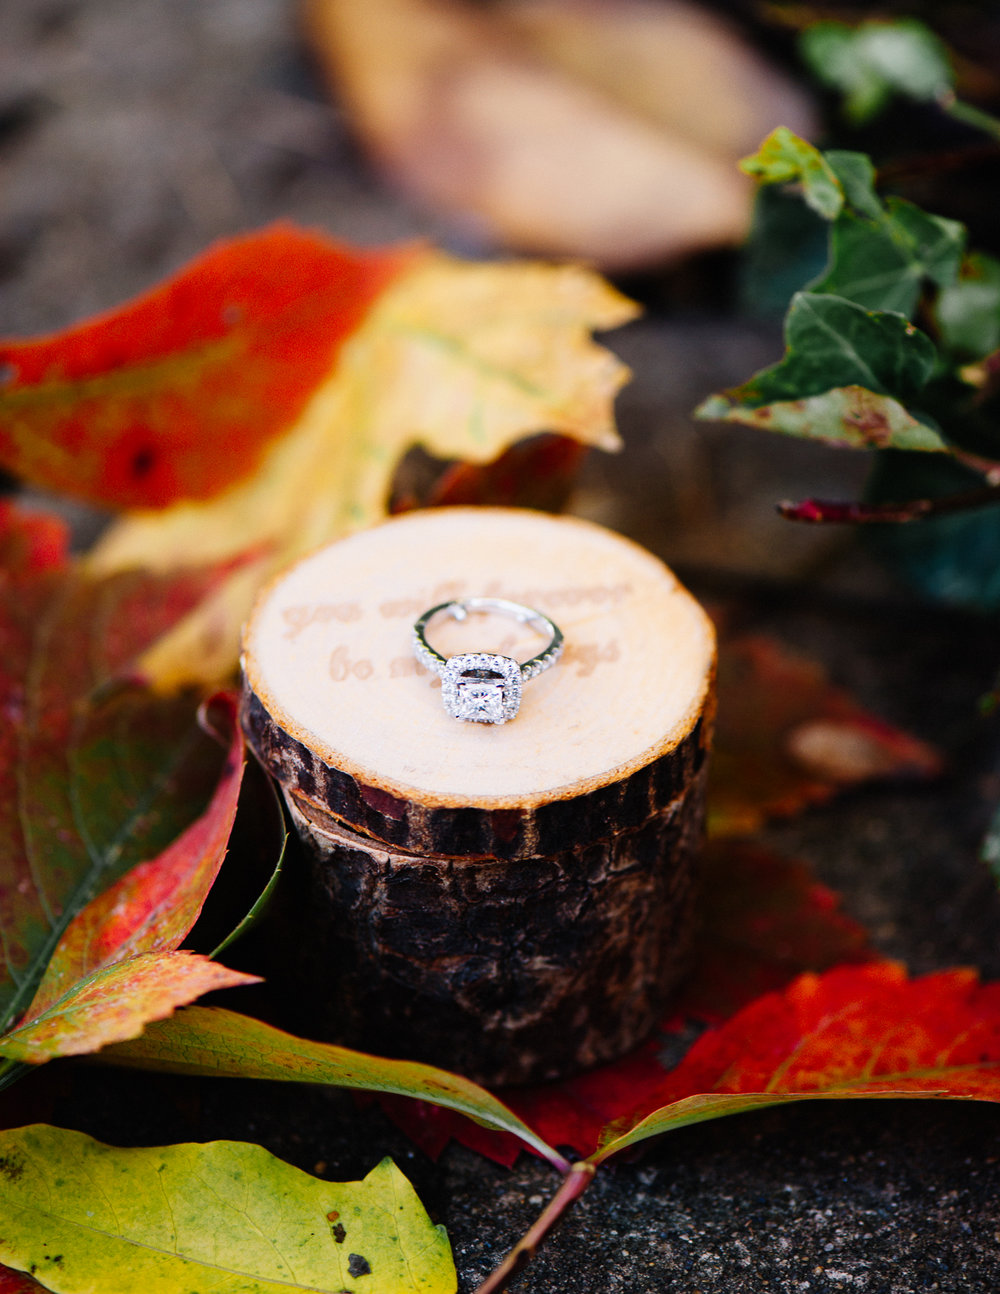 engagement_downtownfredericksburg_Fall_virginiaweddingphotographer_youseephotography_KatieKevin (38).jpg